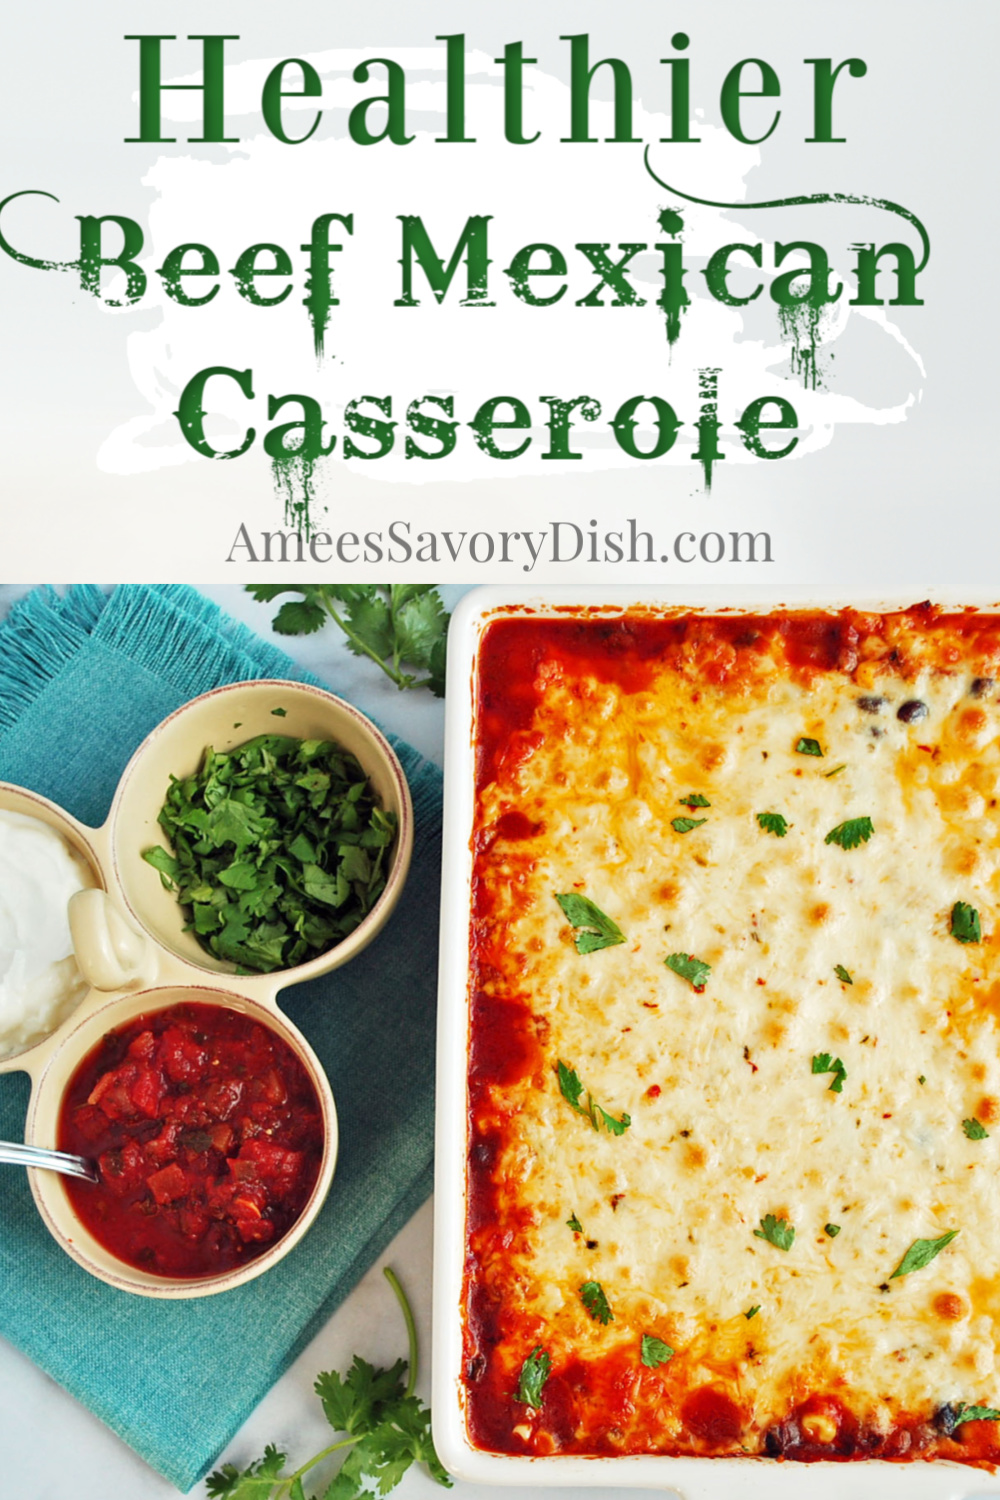 A lightened-up recipe for Mexican casserole made with whole grain corn tortillas, black beans, lean ground beef, and a blend of white cheddar and pepper jack cheese. #mexicancasserole #beefcasserole #mexicanbeefcasserole #healthiermexicancasserole #mexicanrecipes via @Ameessavorydish